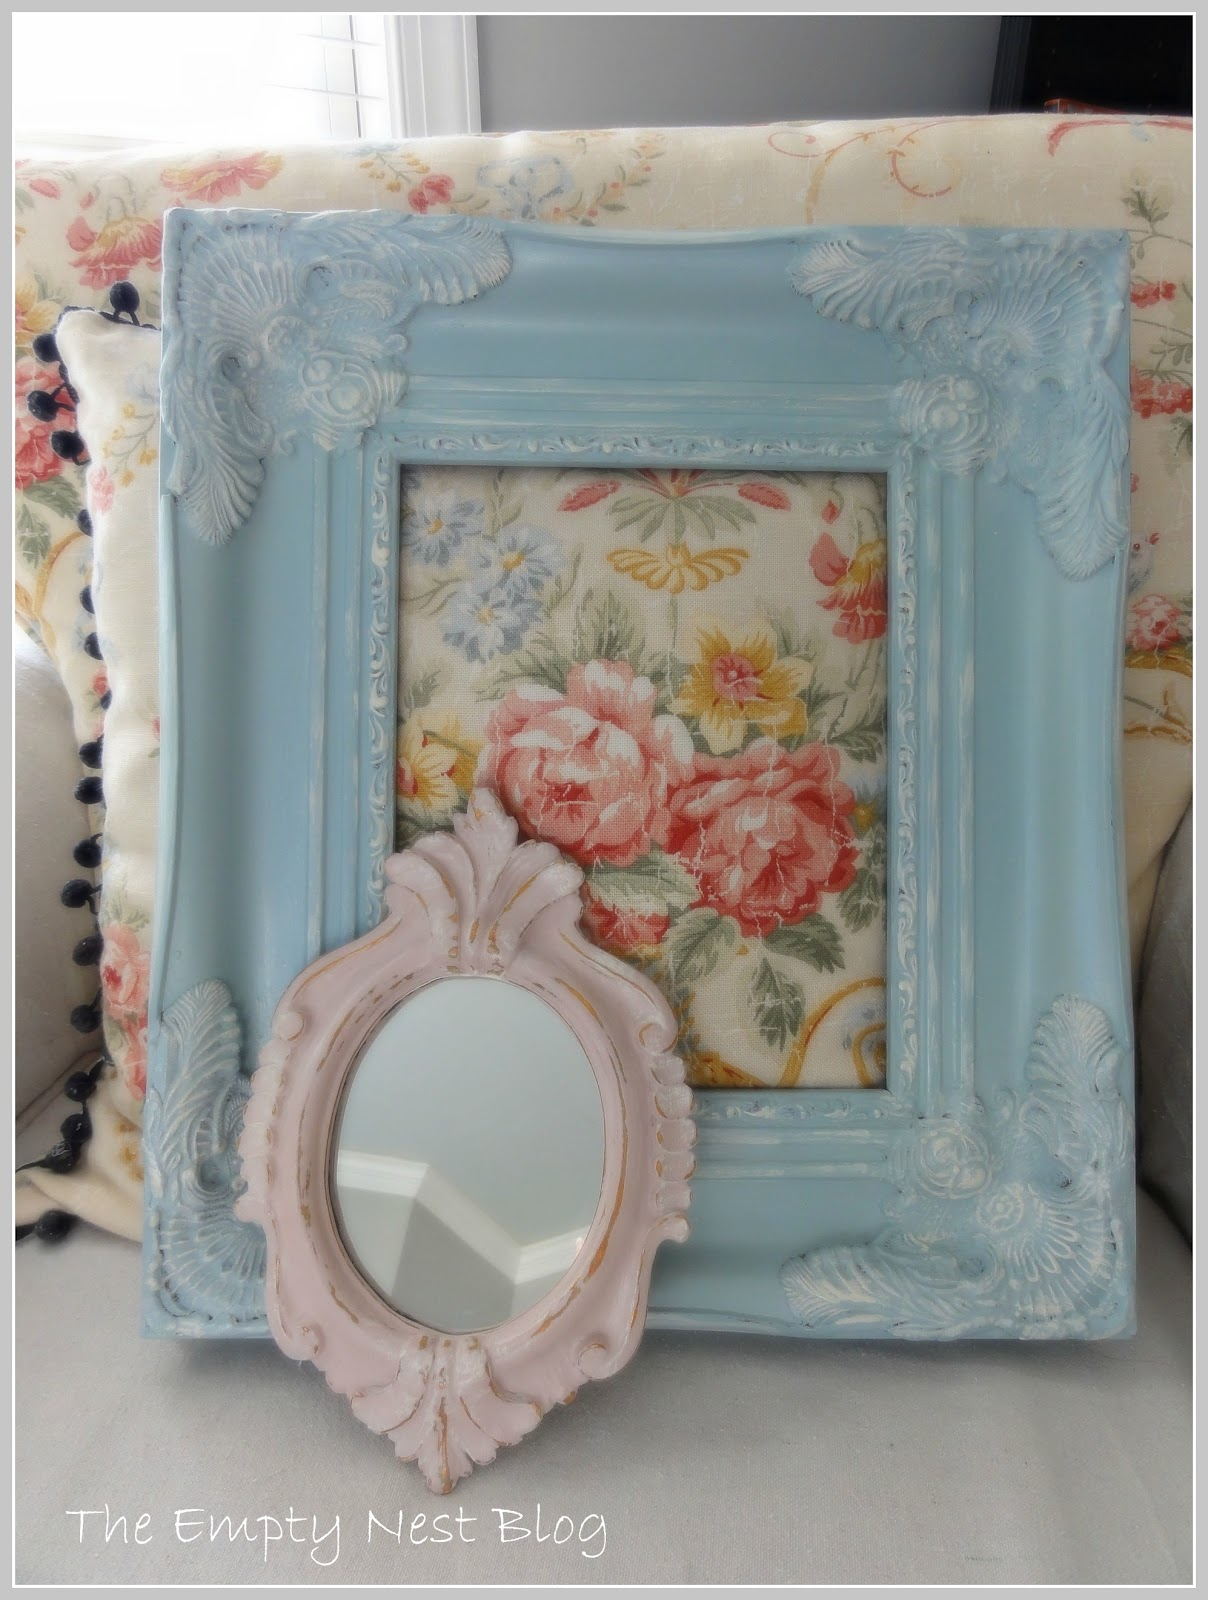 The empty nest annie sloan you  resin ate with me craft ideas pinterest chalk paint painting and also rh